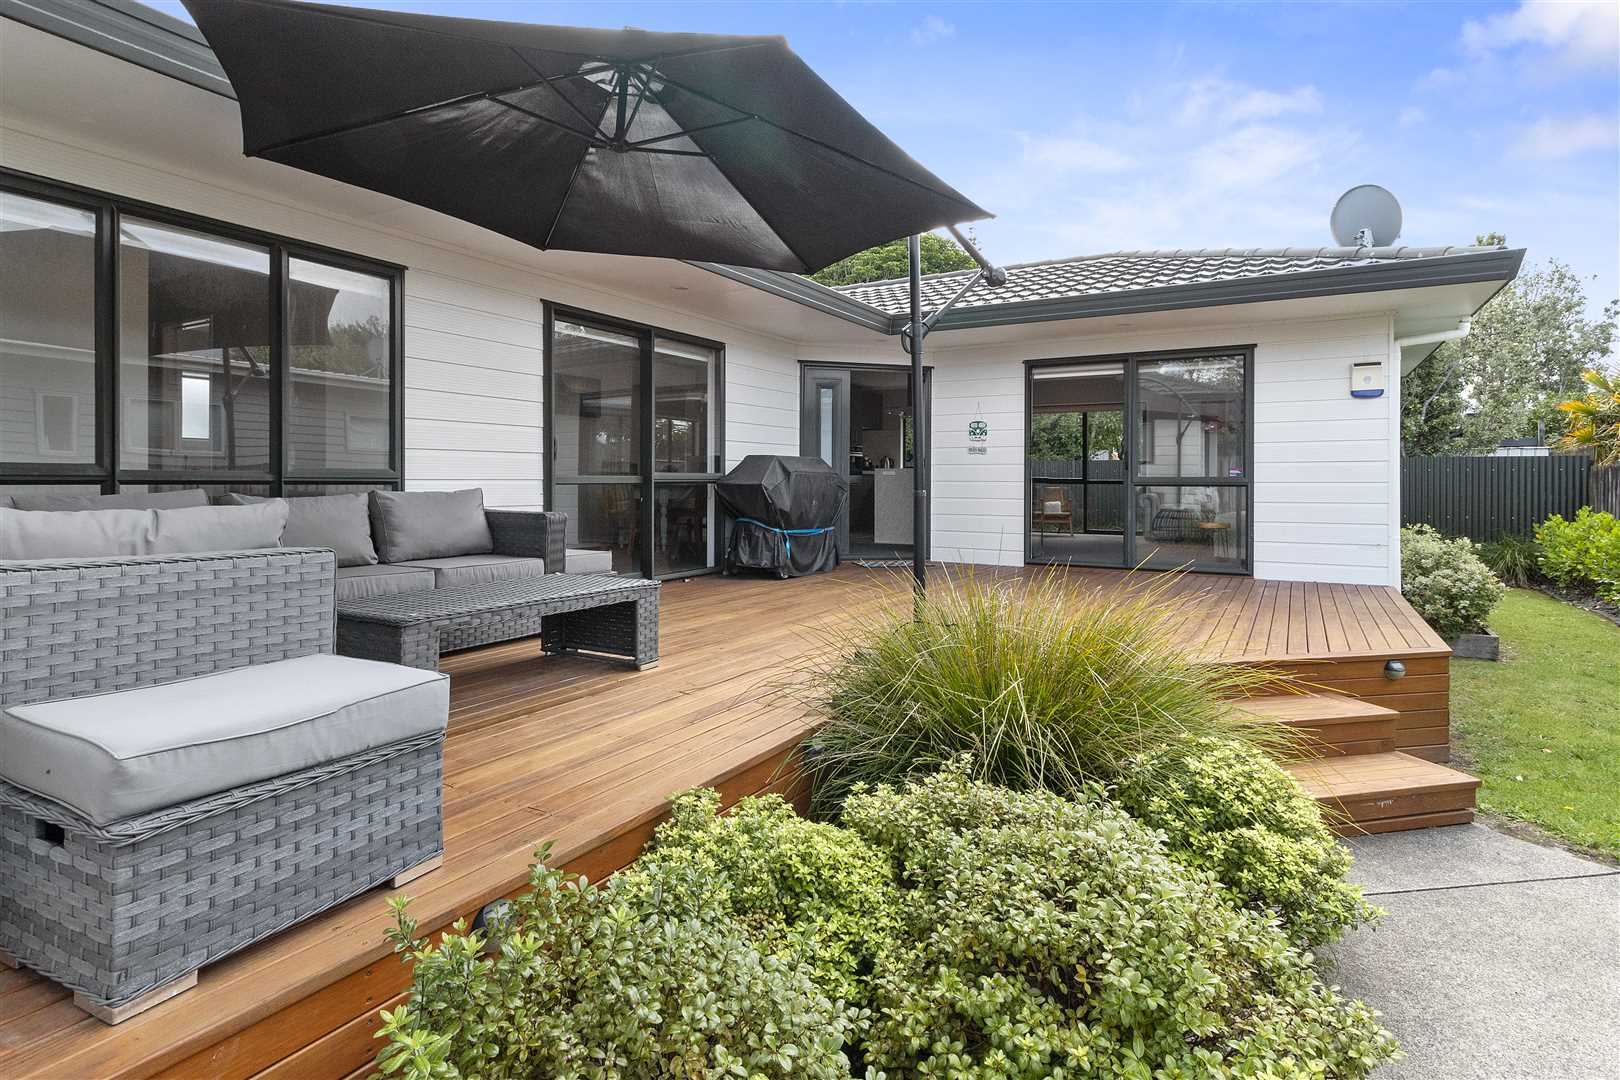 207b The Square, Whangamata